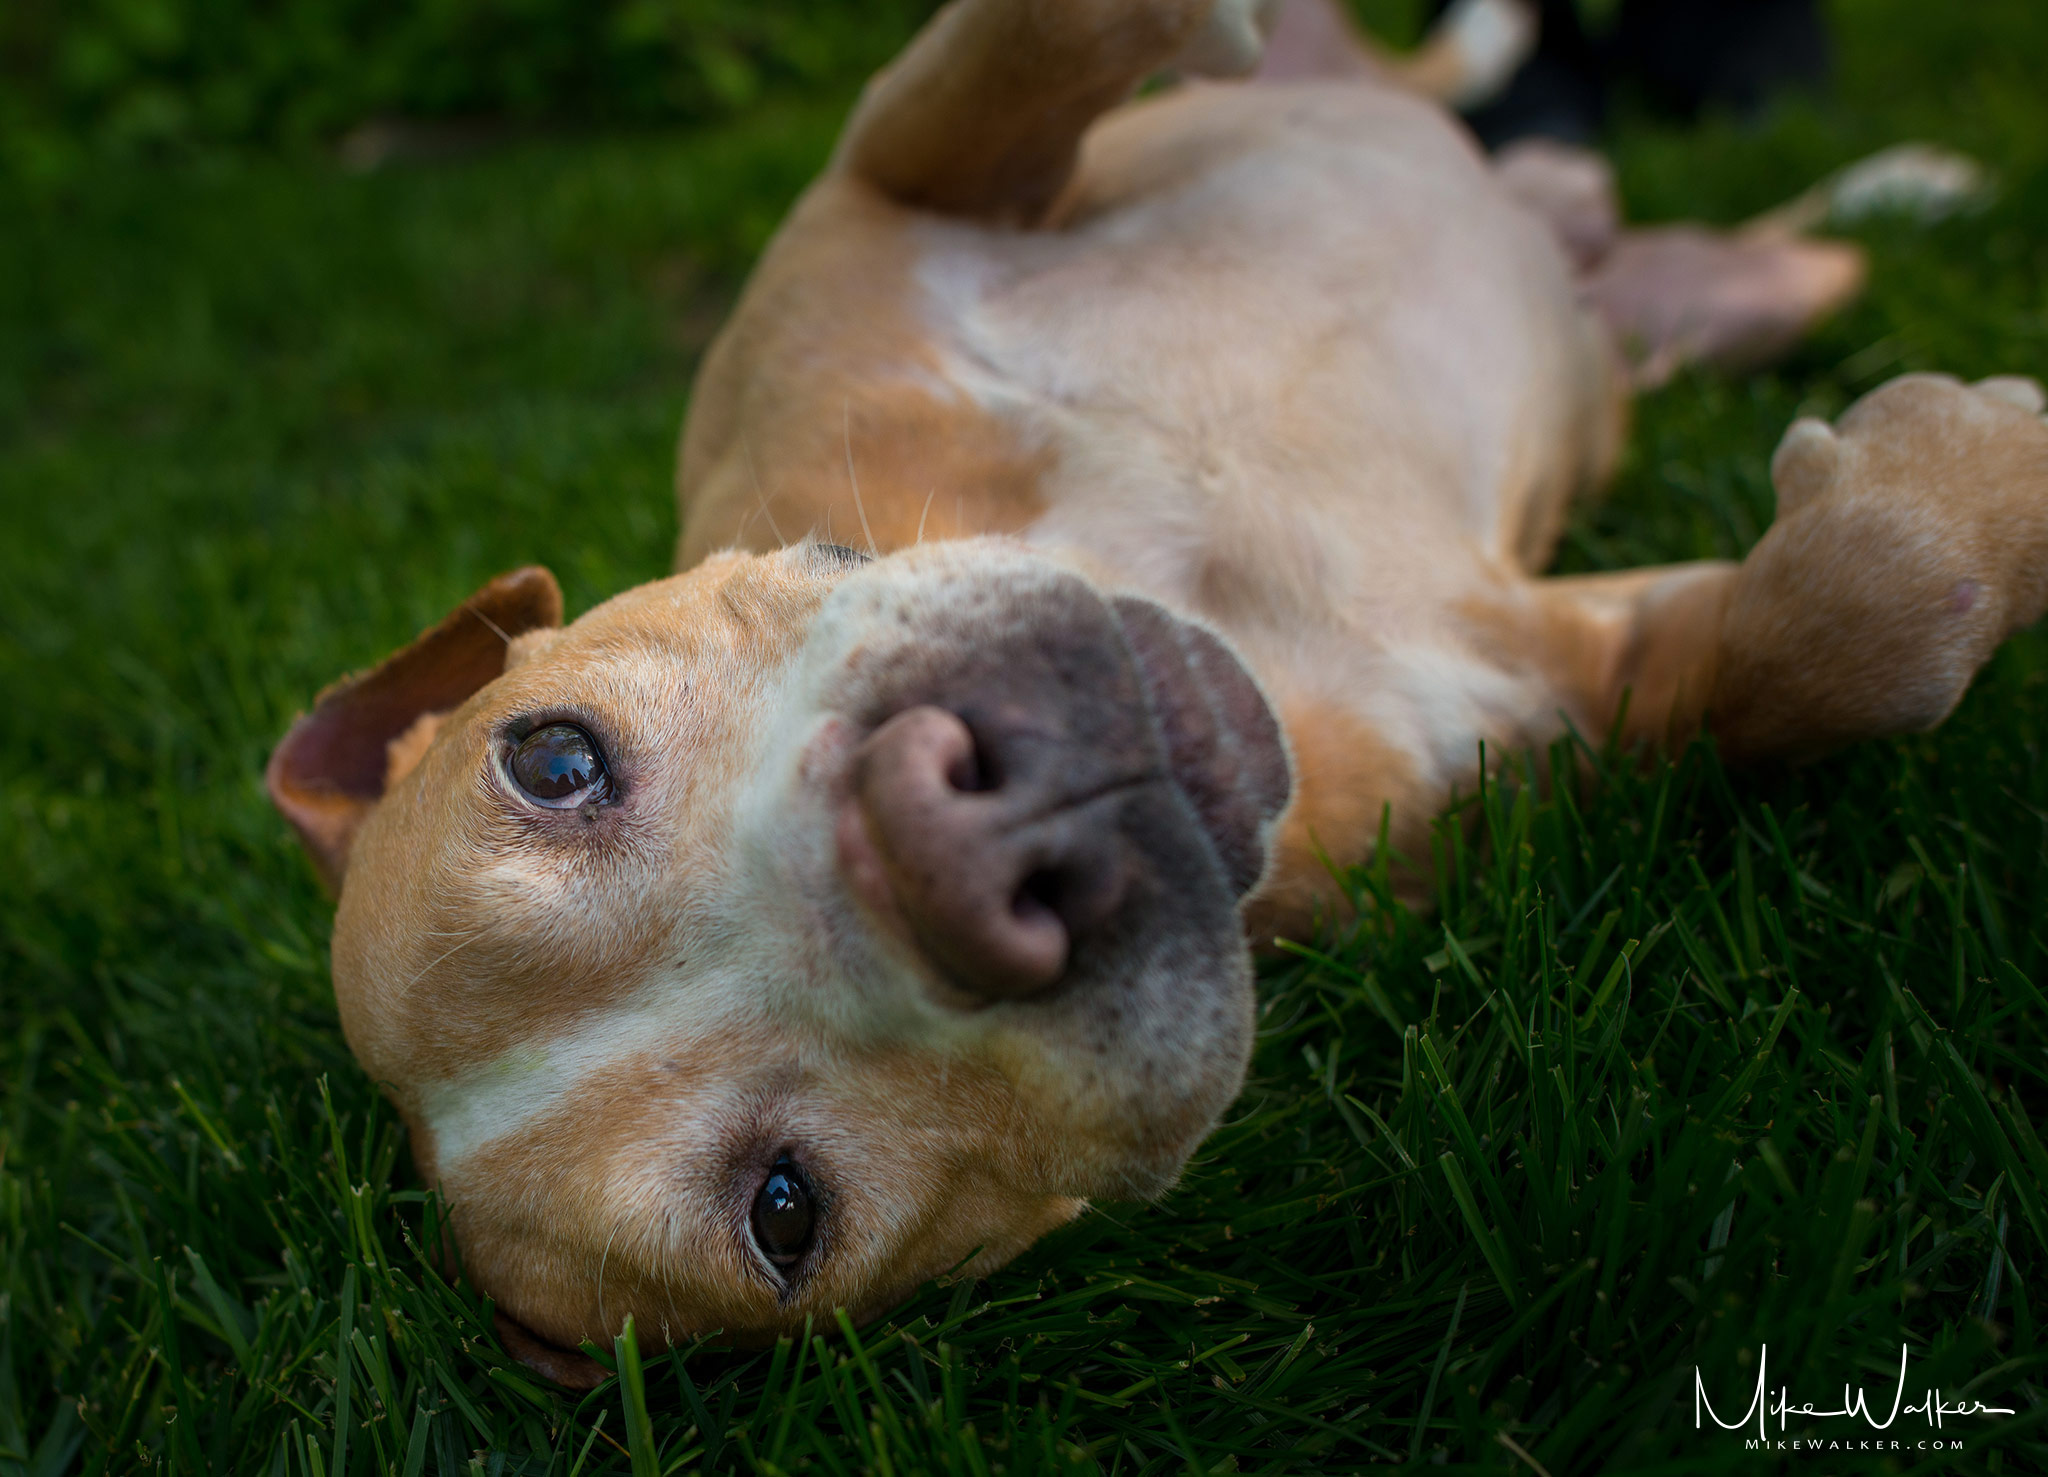 Picture of a rescue dog in the grass for Green Mile Rescue. Animal photography by Mike Walker.